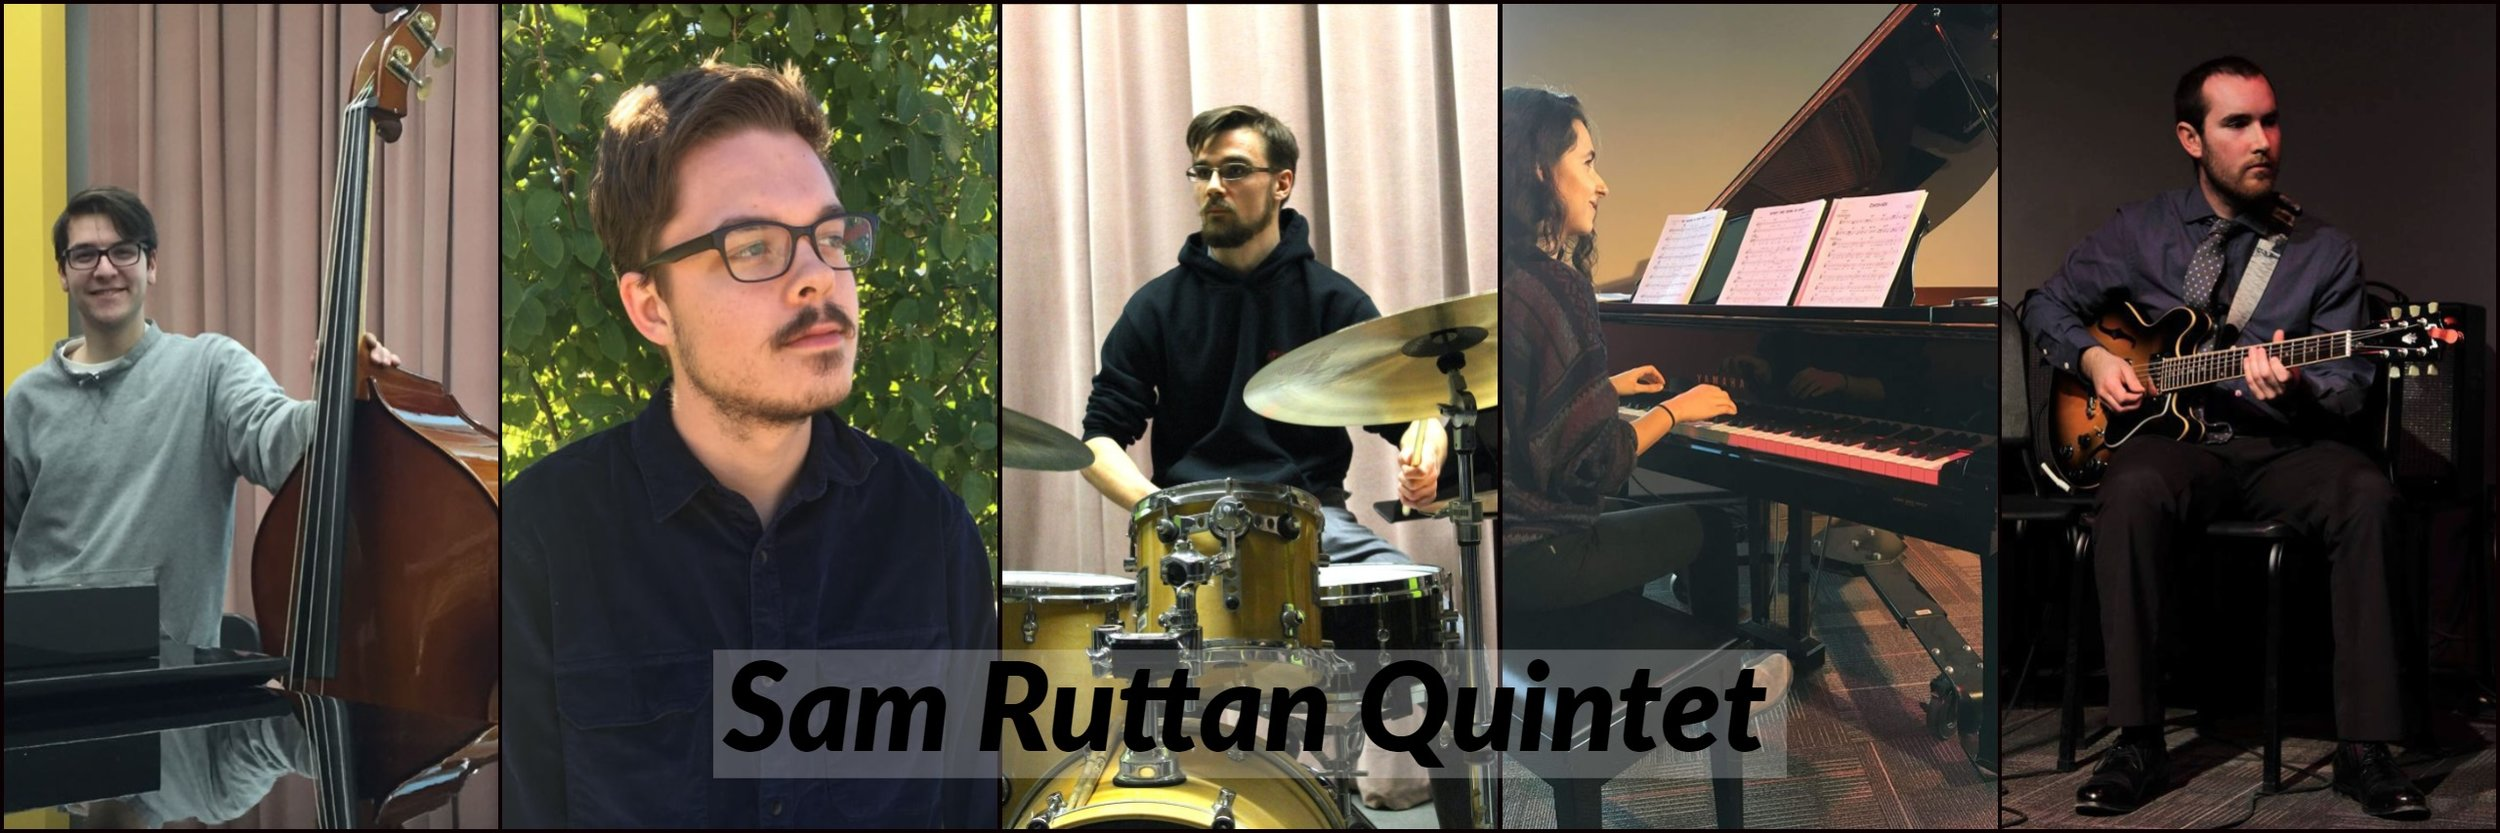 - Made of up five York University students, the Sam Ruttan Quintet is a Toronto based group with a focus on modern jazz and interactive improvisation.The goal is always to explore each tune and tell a story for the listener, a process made easier by the experience that the members have accumulated playing with each other over the past several years.The quintet plays original compositions written by the band members and inspired by the likes of Wayne Shorter, Brian Blade, Mark Guiliana, and Kurt Rosenwinkel, as well as arrangements and interpretations of standard repertoire.Featuring:Connor Moe (flute/tenor sax)Racha Moukalled (piano)Daron McColl (guitar)Robert Bourrie (bass)Sam Ruttan (drums)